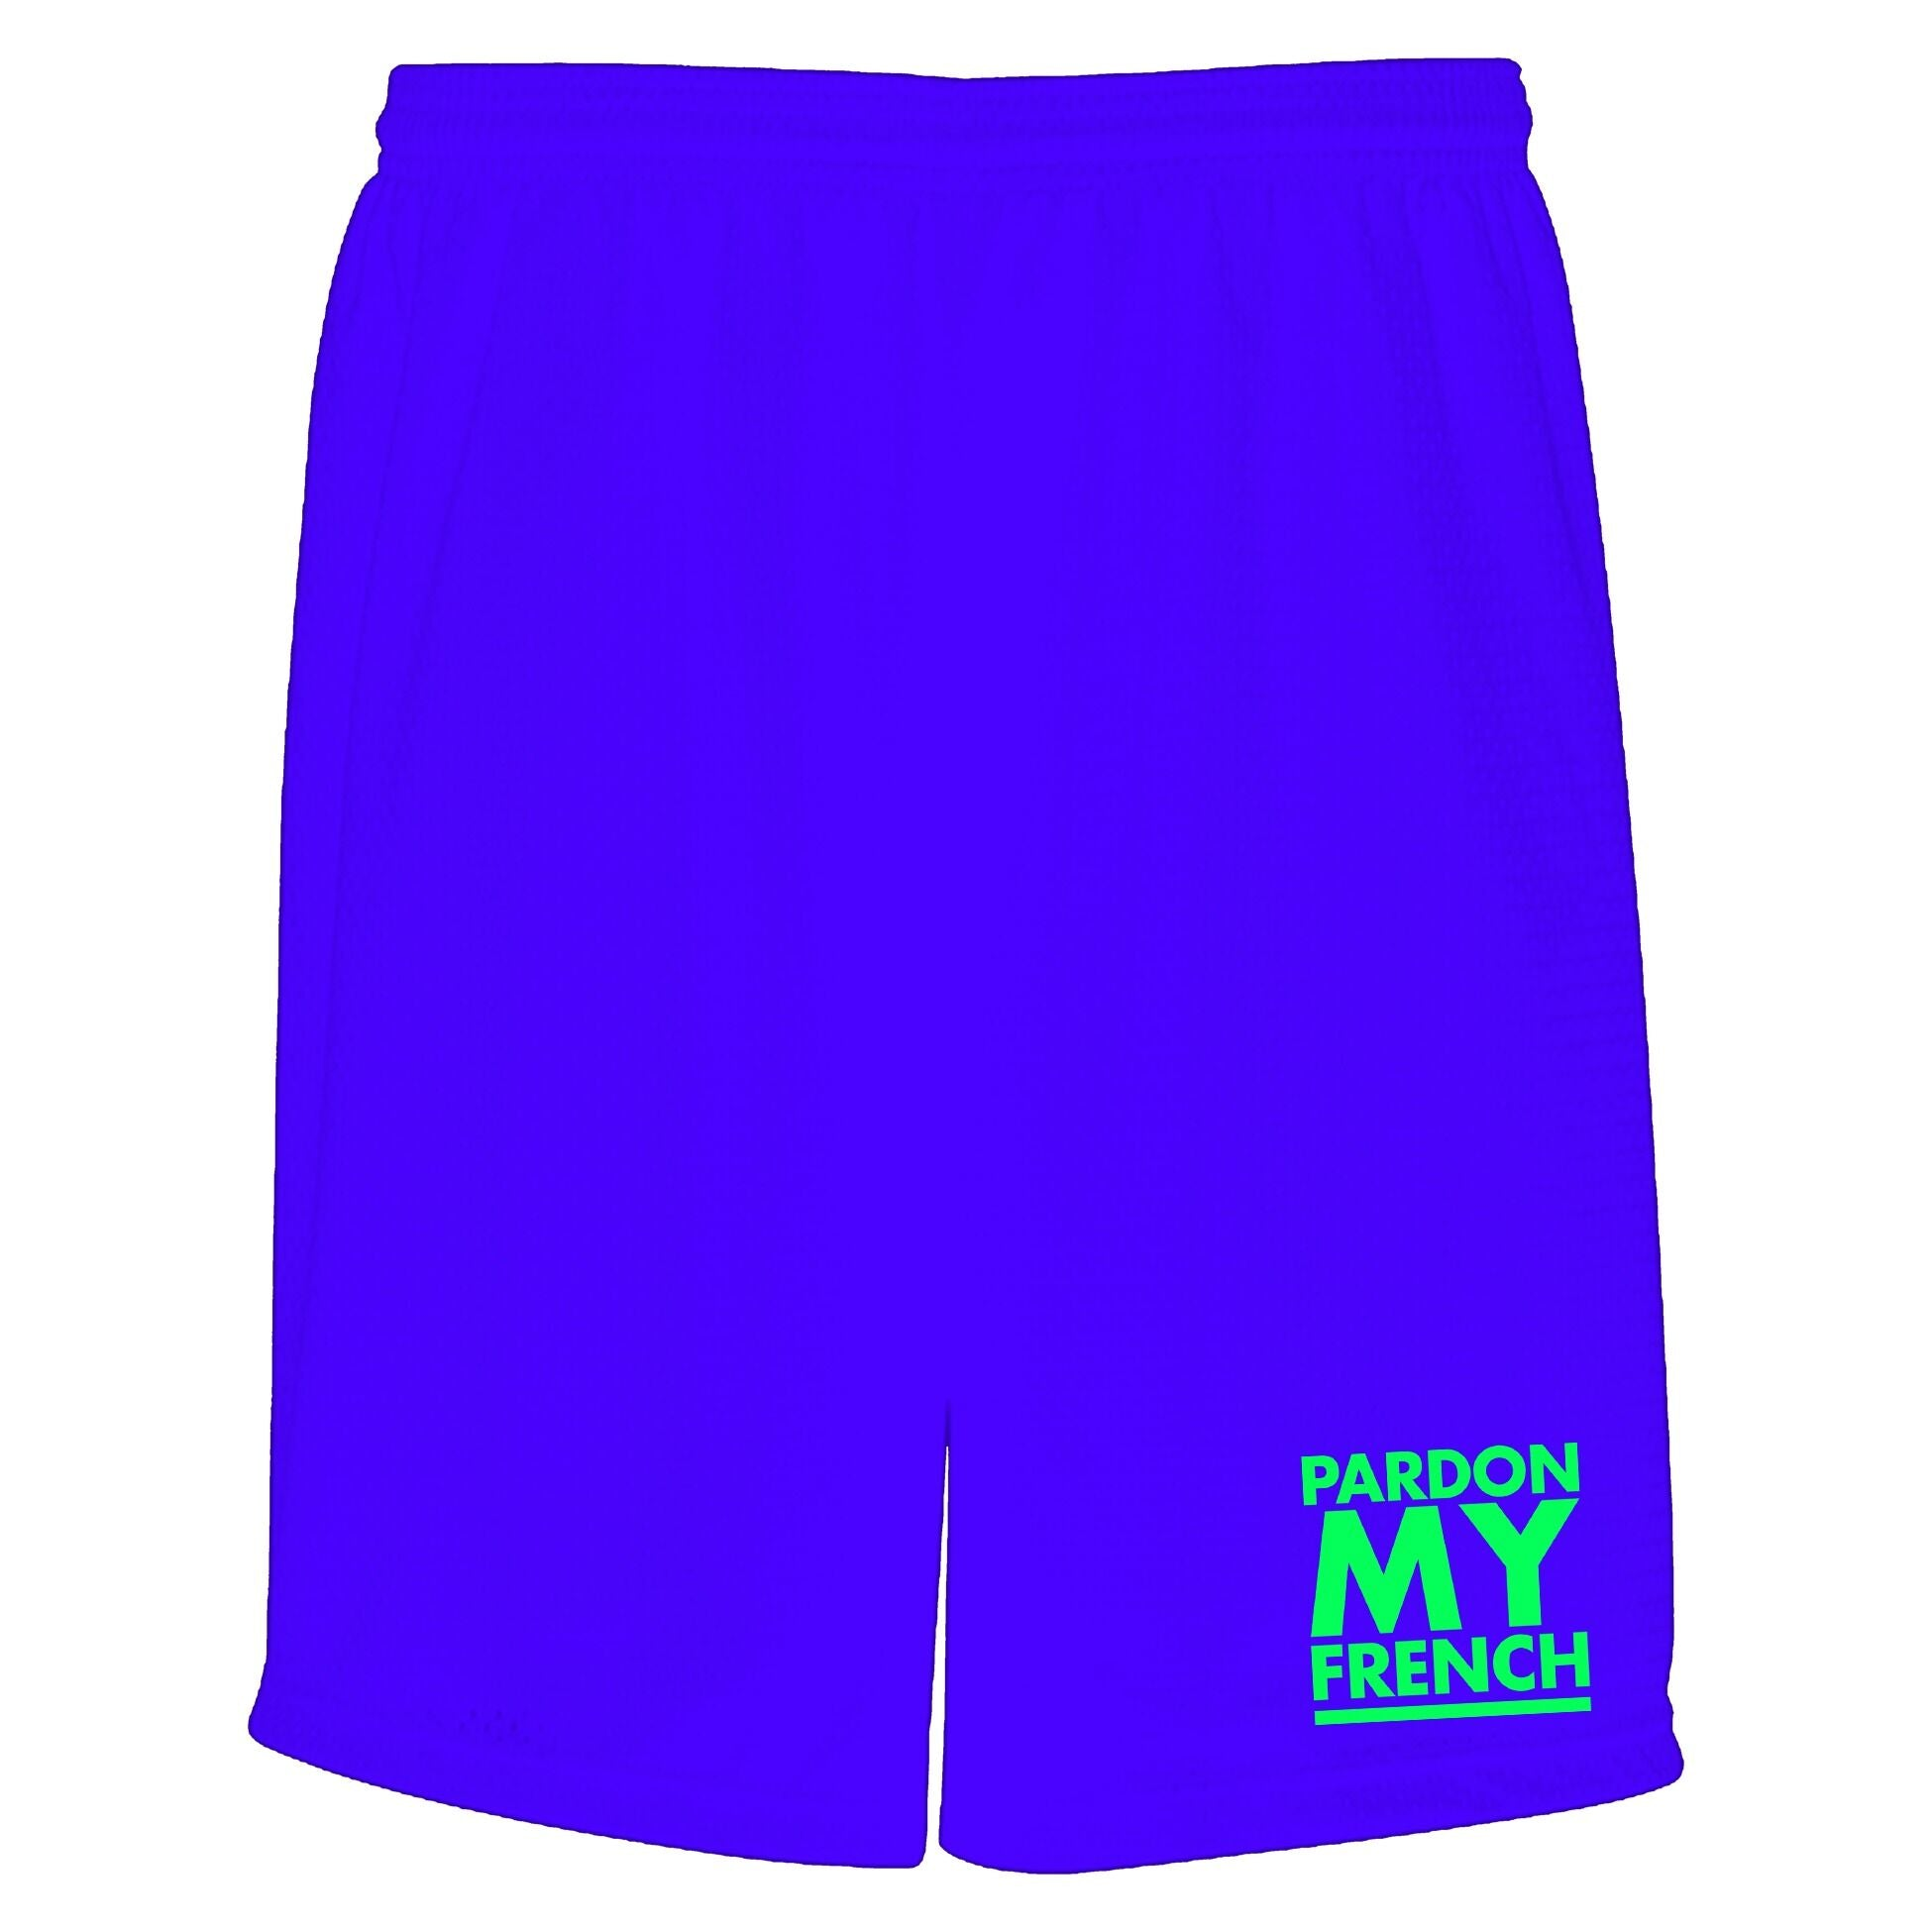 TRUNKS PMF CLASSIC LOGO BLUE